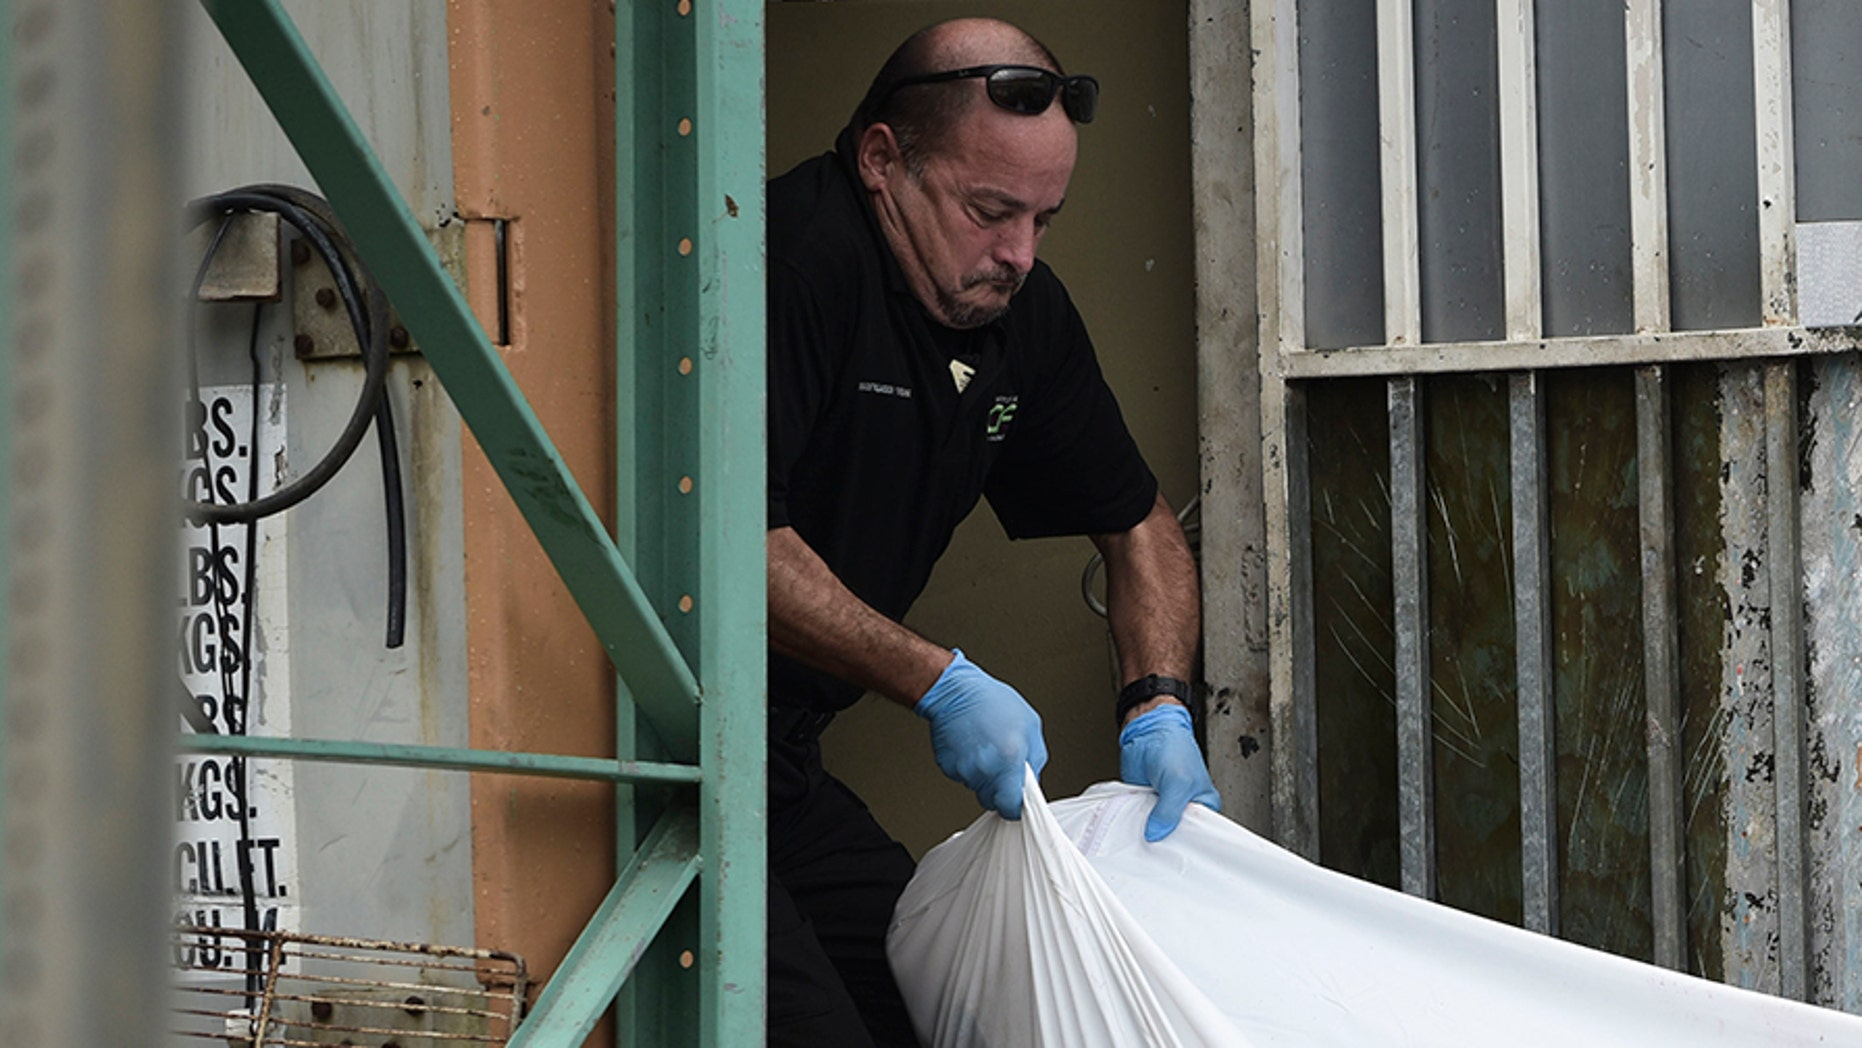 Forensic worker moves a body at a San Juan crime scene in January, Puerto Rico's deadliest month in recent years